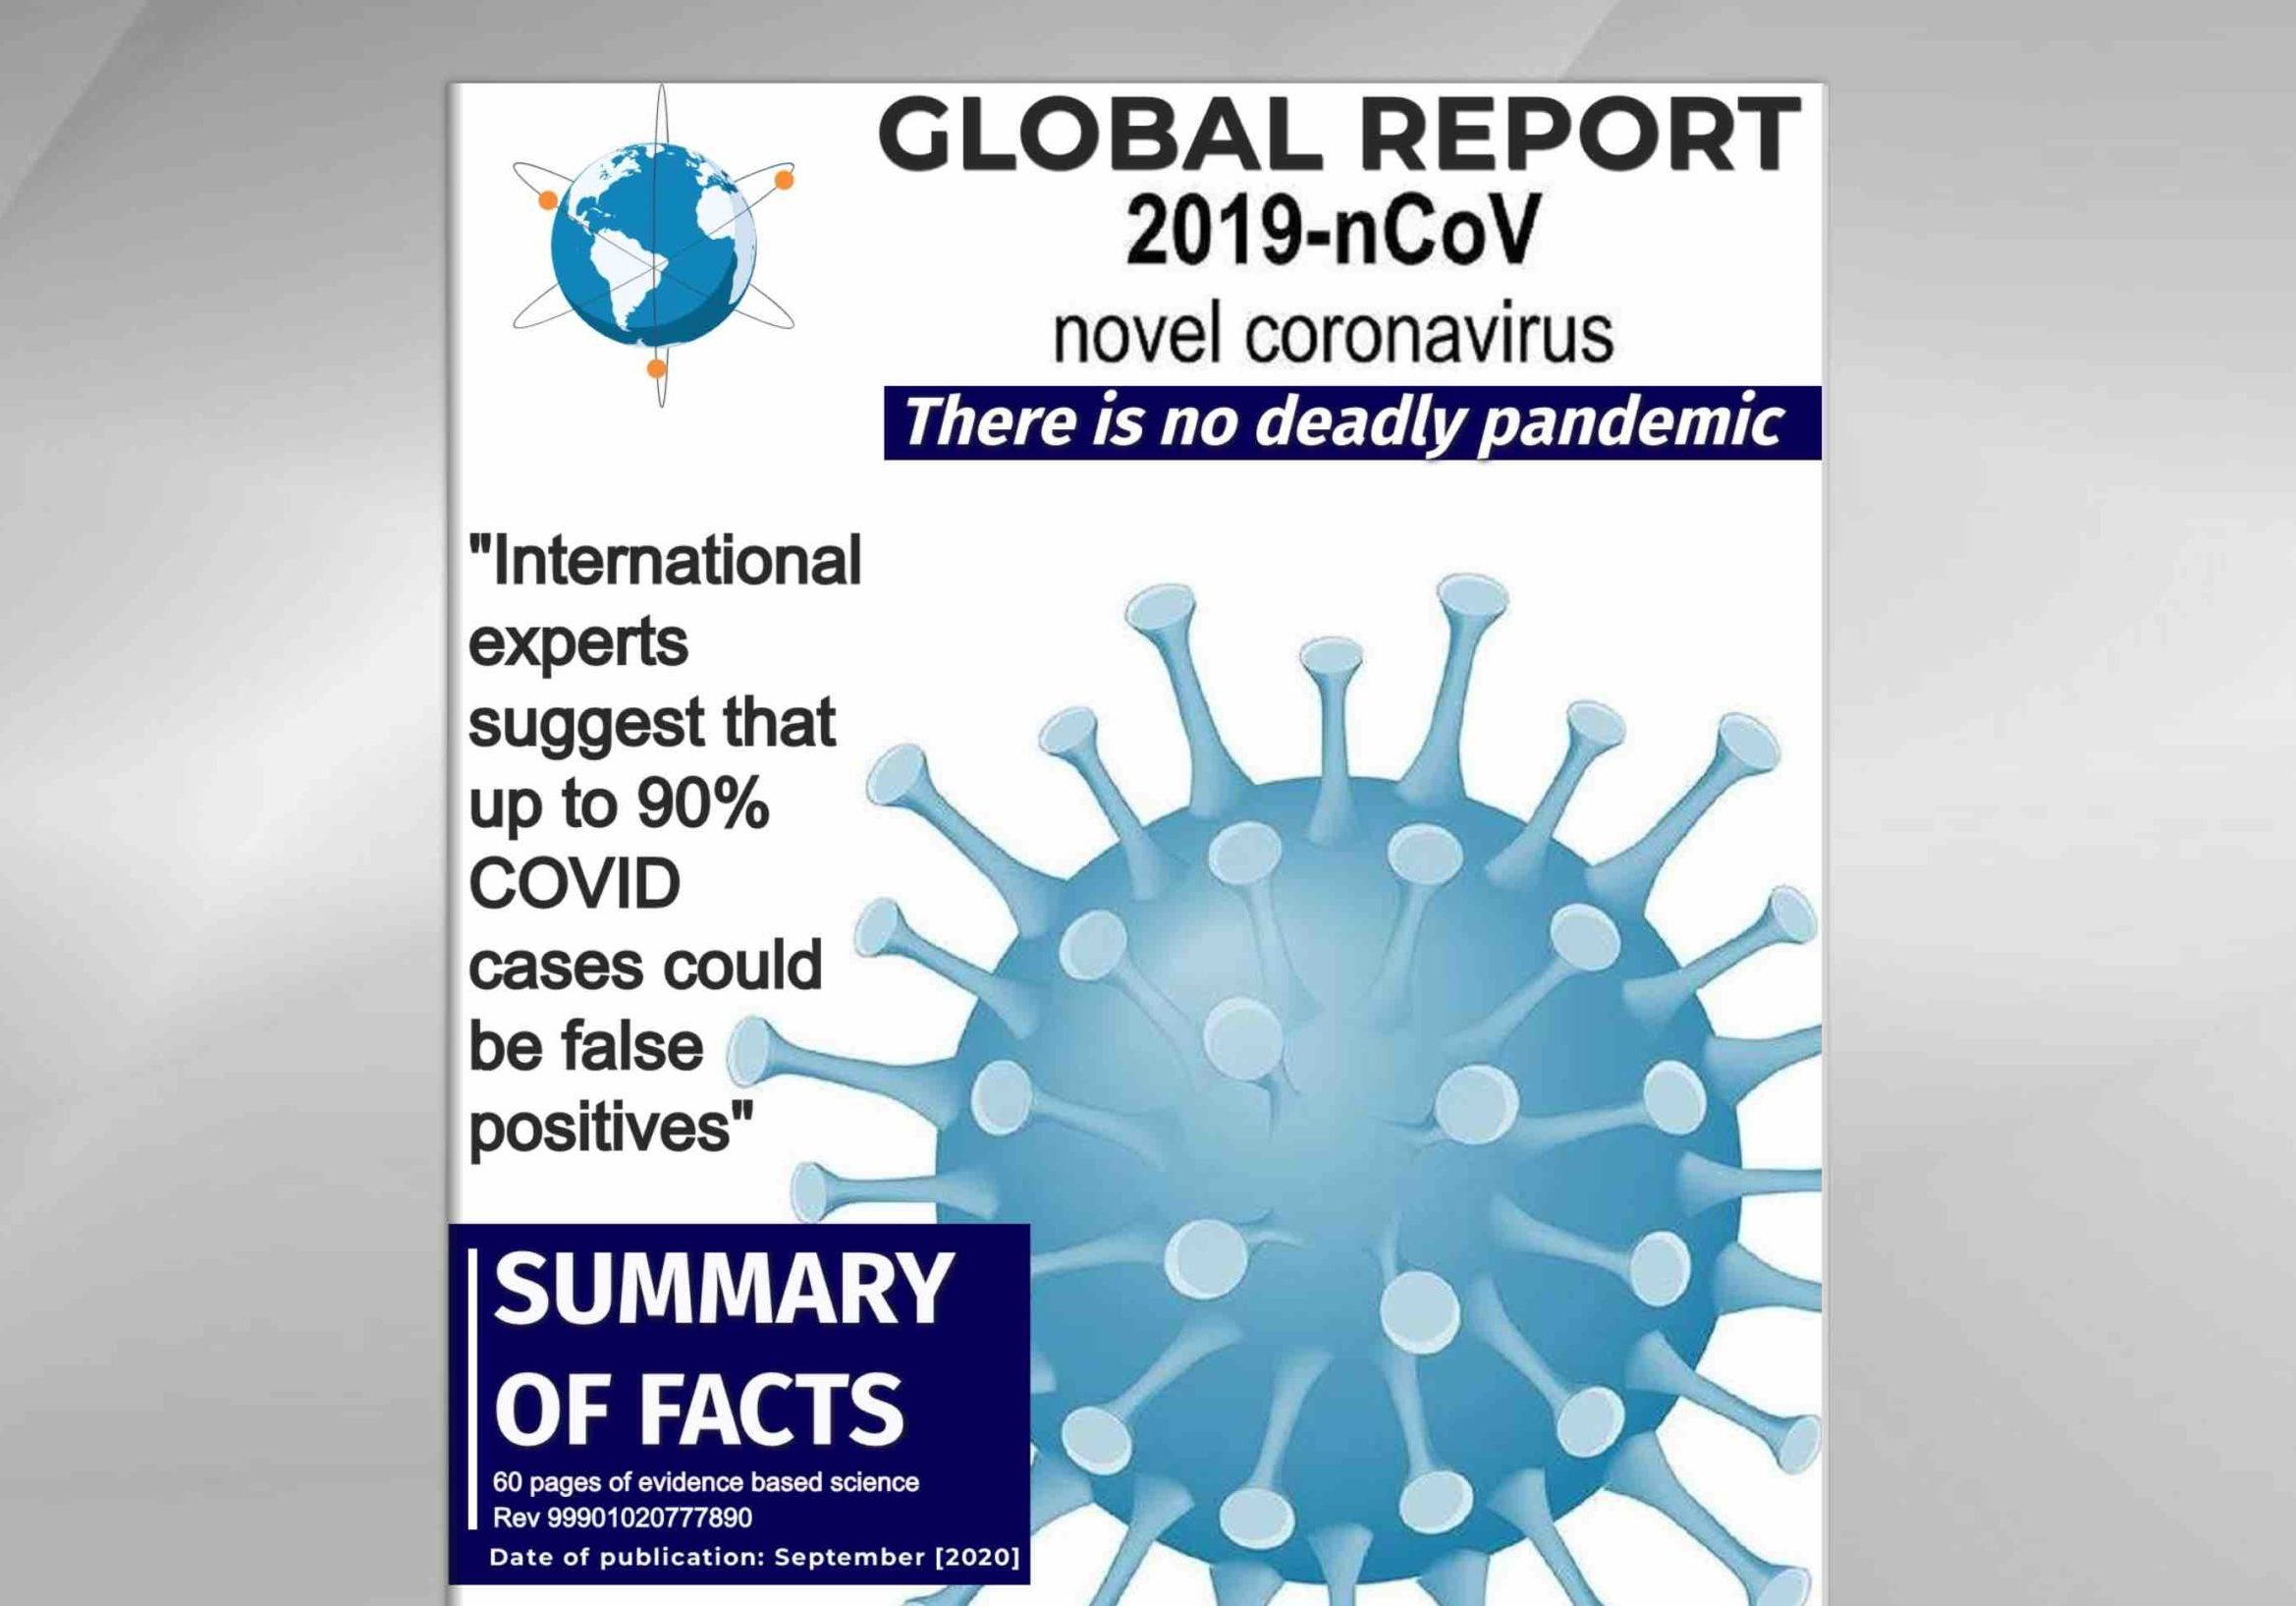 Global Report COVID Summary Facts